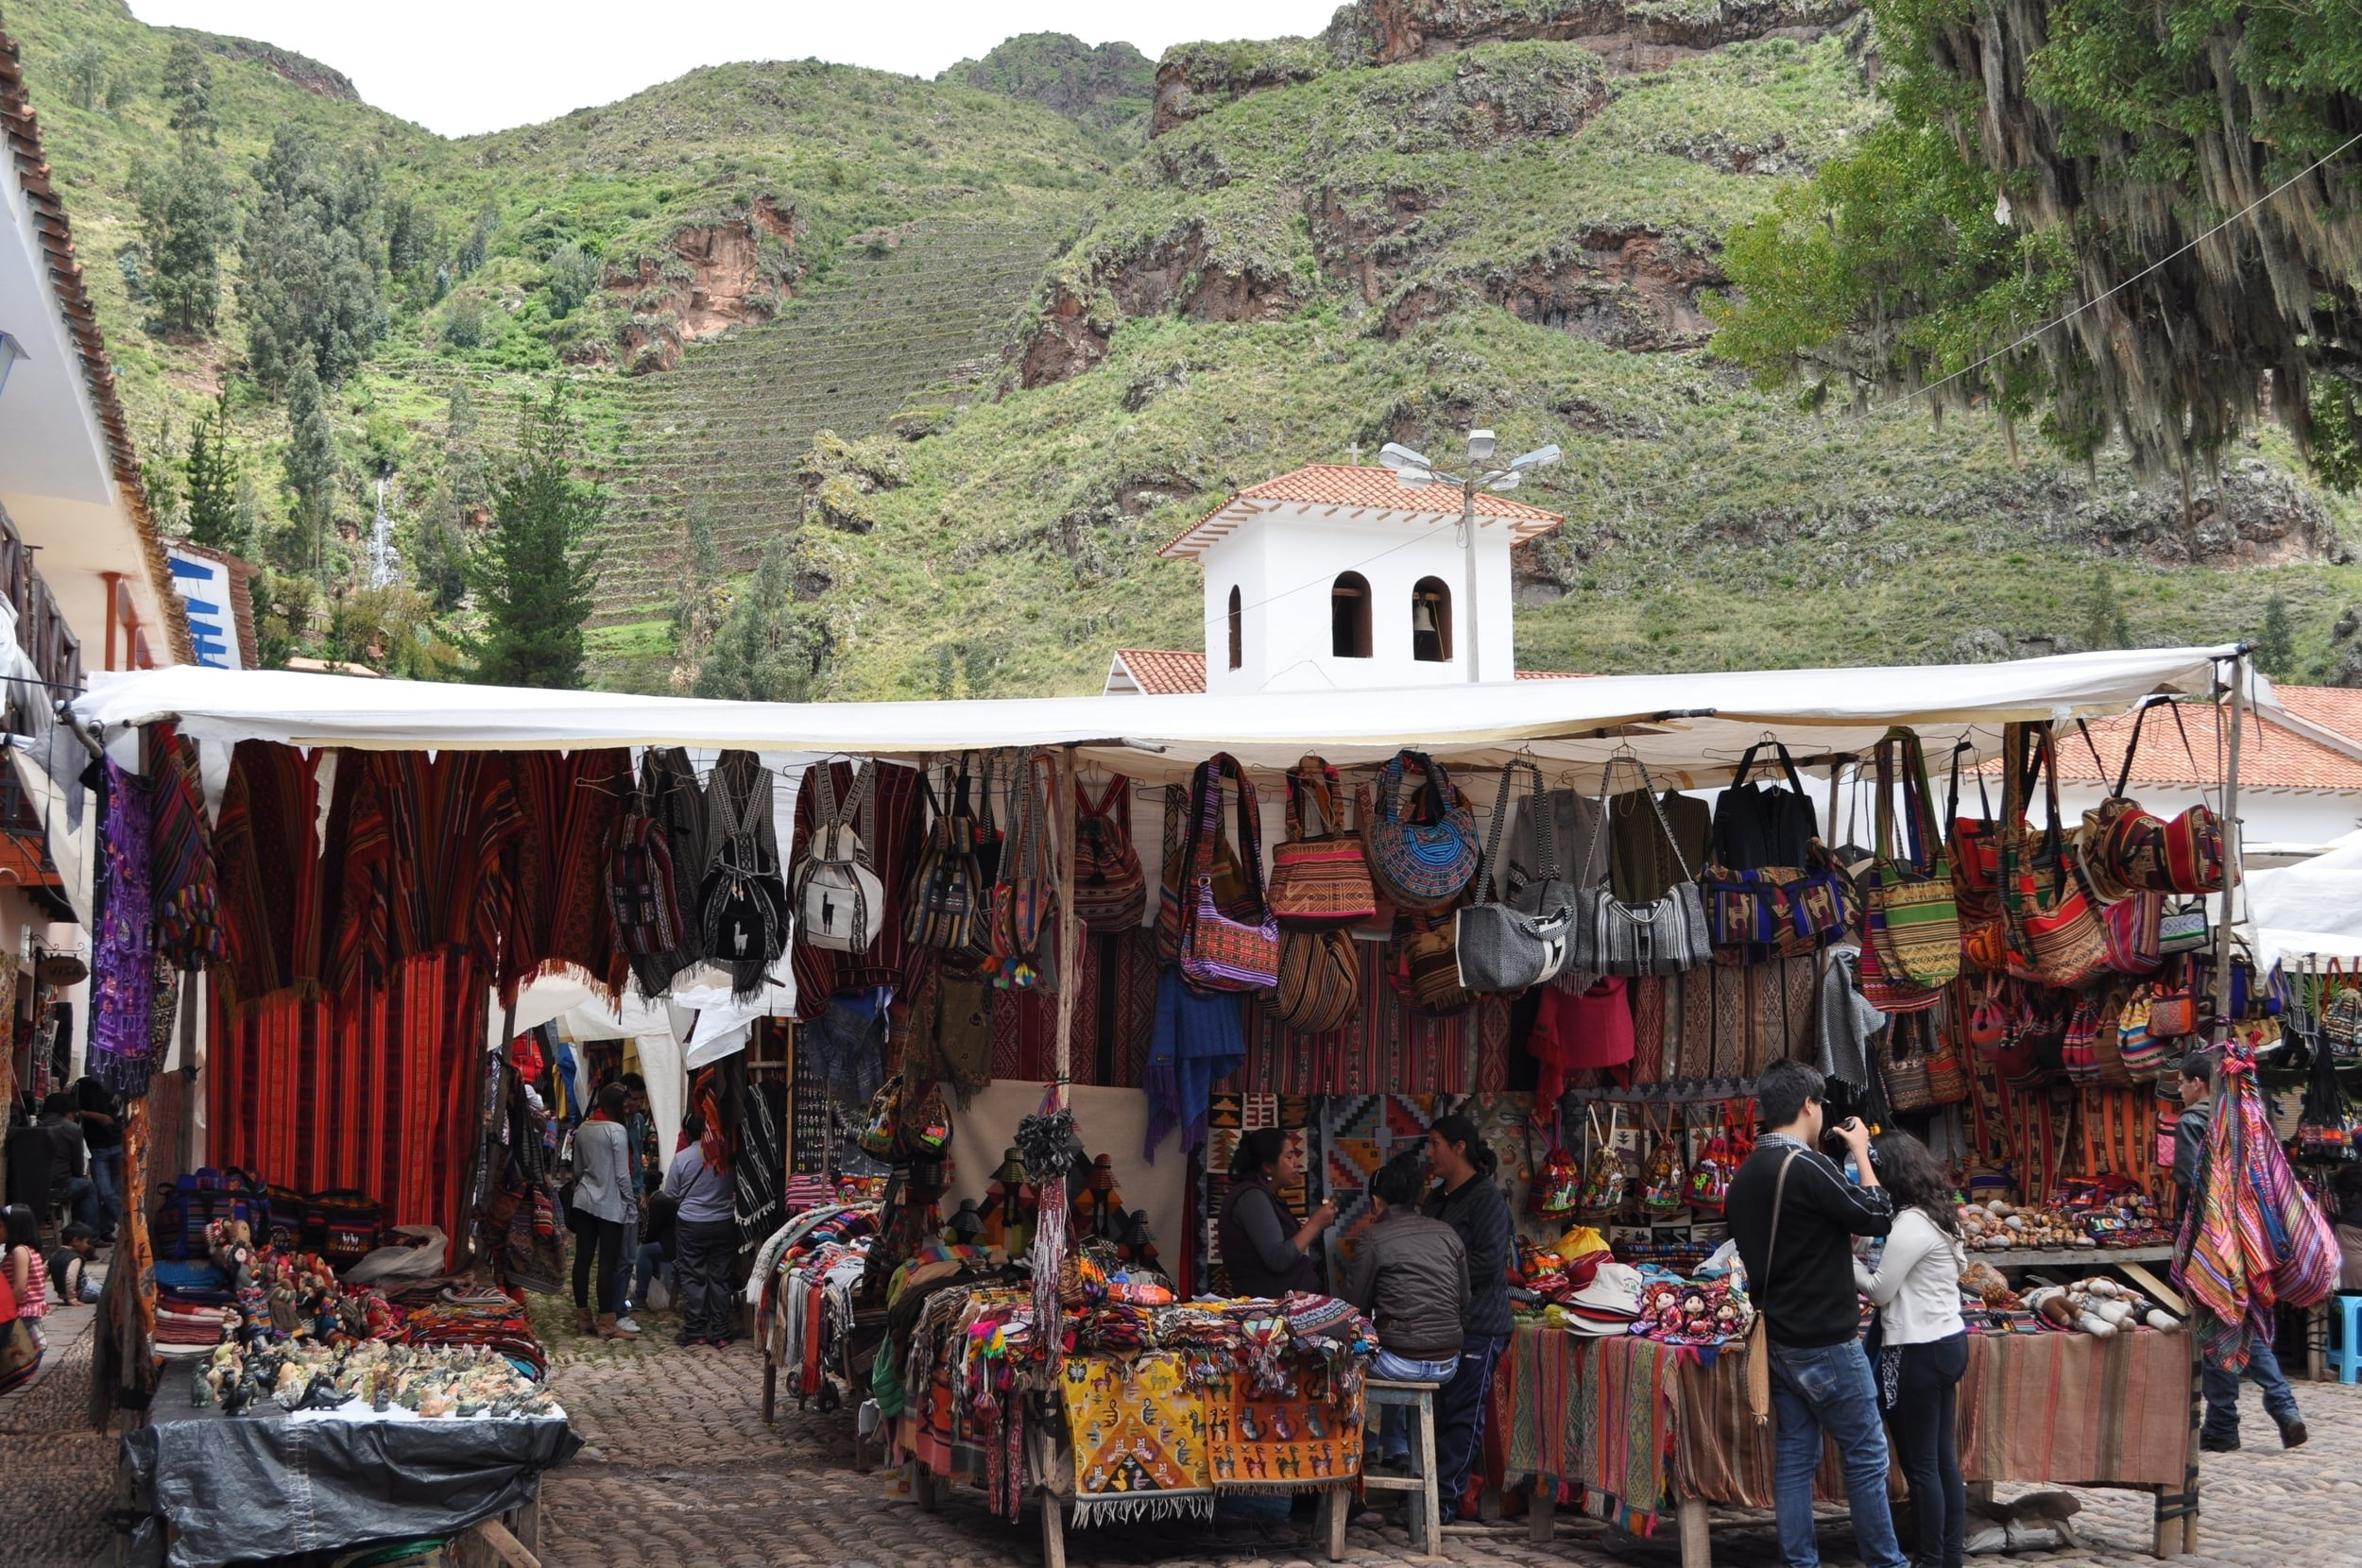 In the Pisac Market the bright colors stand out in the textiles and the crafts. Photo: Pamy Rojas